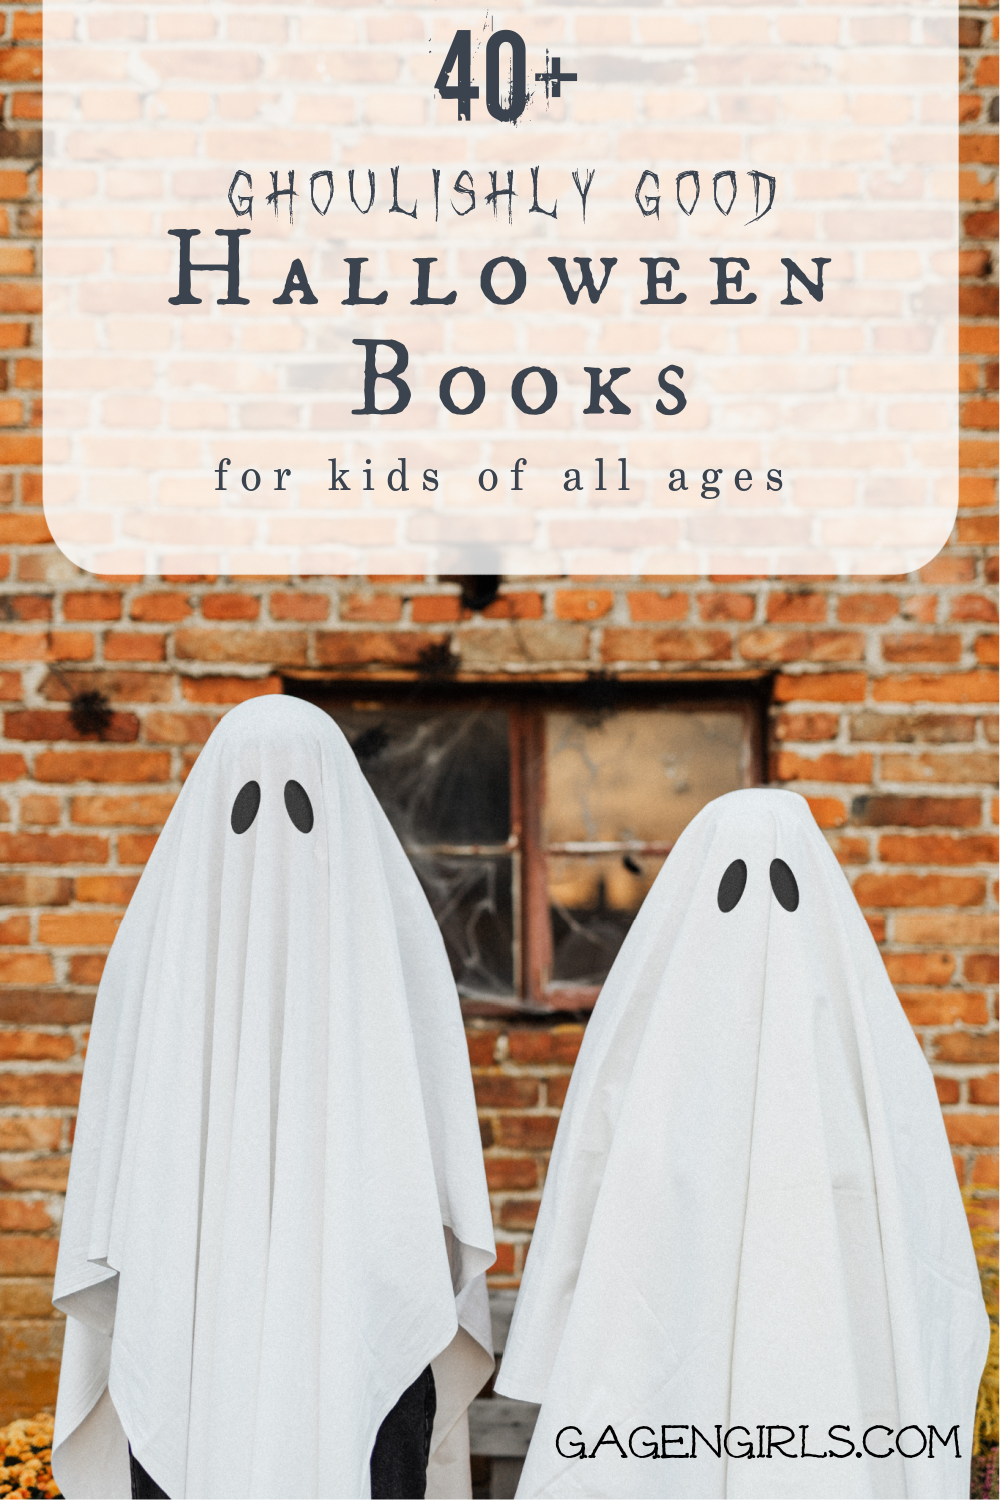 40+ Ghoulishly Good Halloween Books for Kids of All Ages